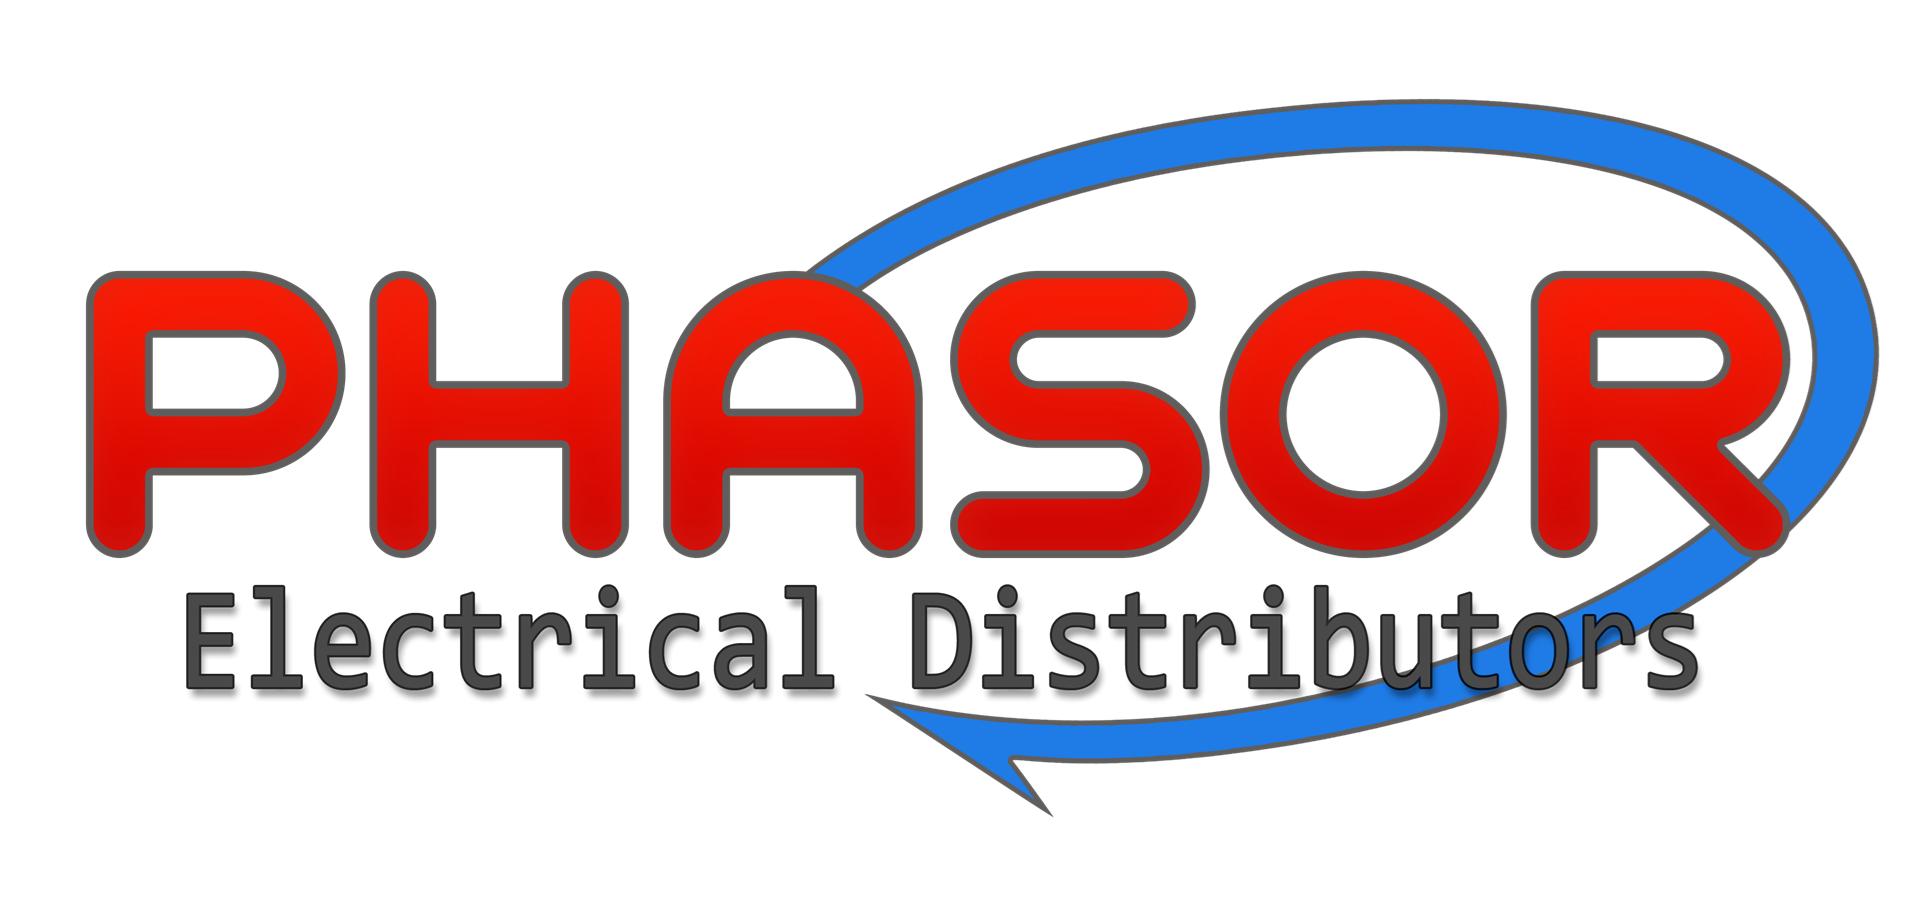 Phasor Electrical Distributors Ltd